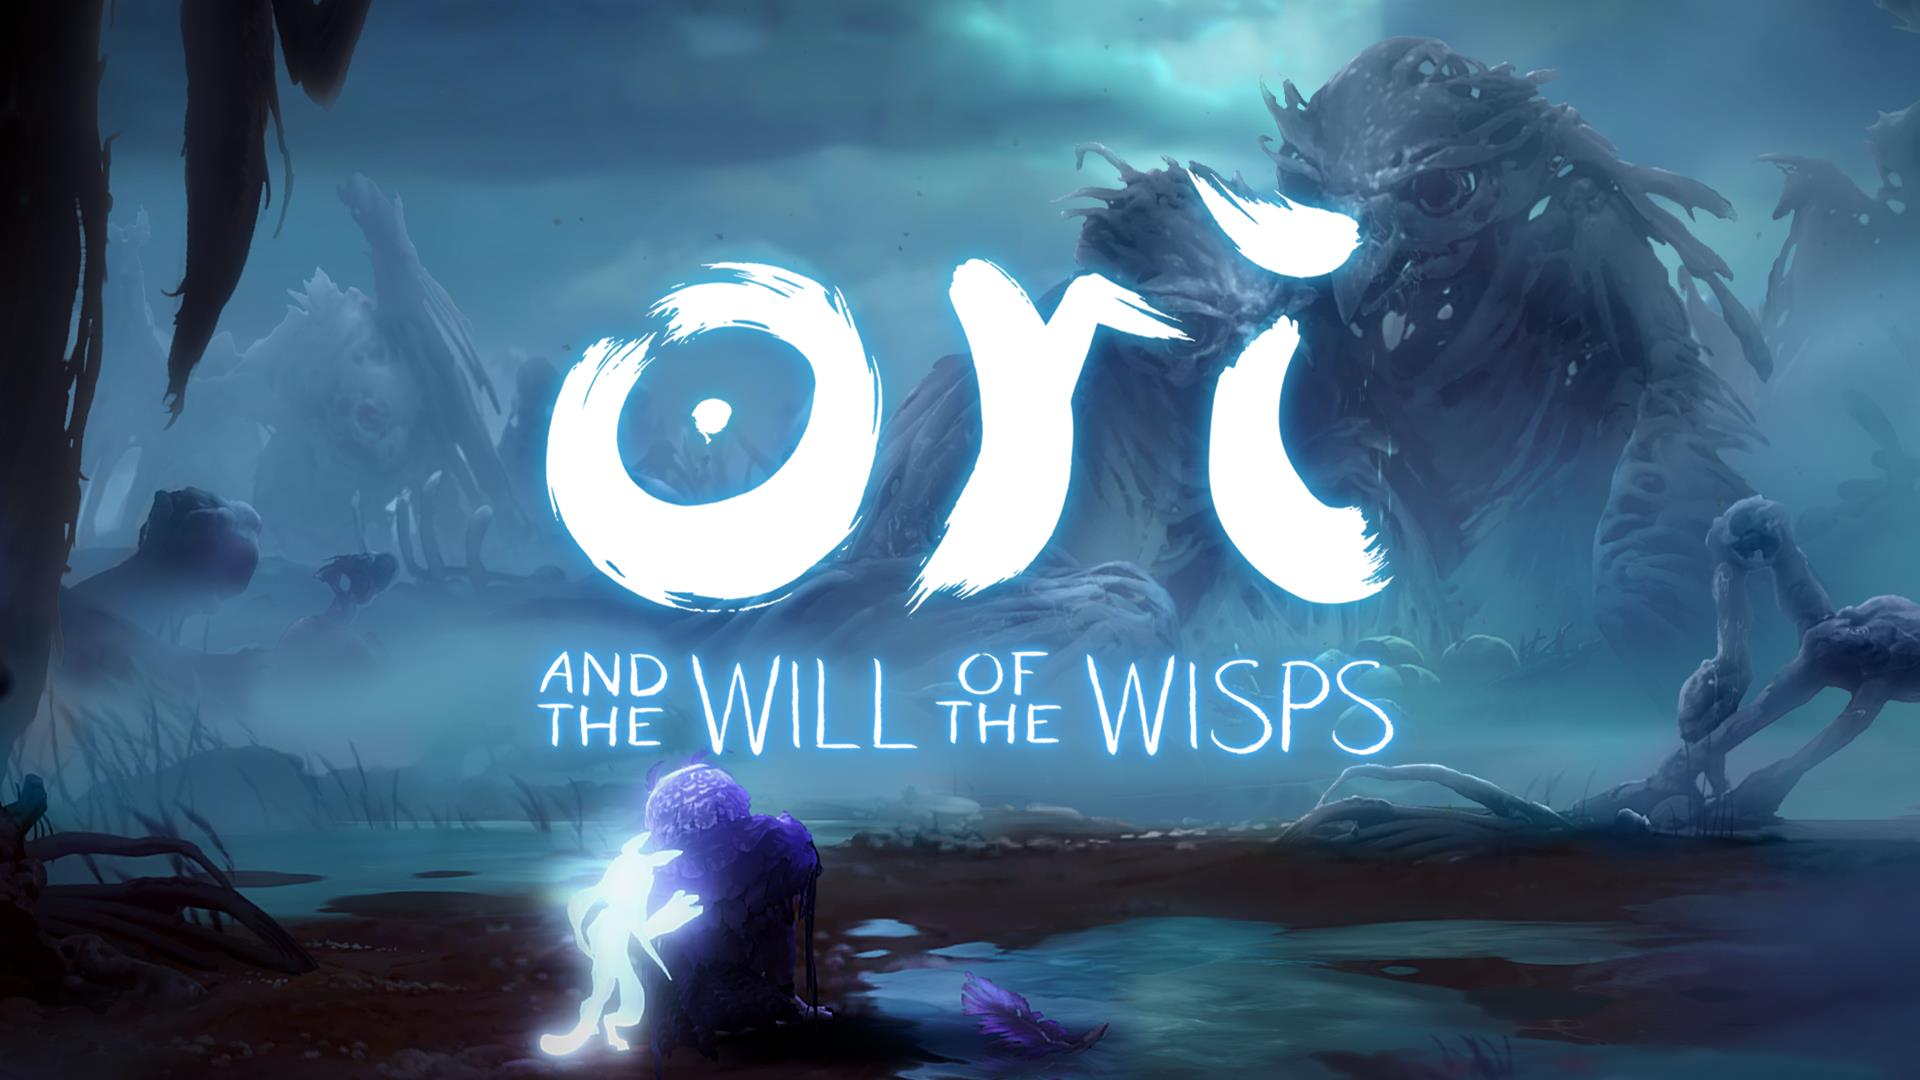 Free Download Ori And The Will Of The Wisps Hd Wallpaper